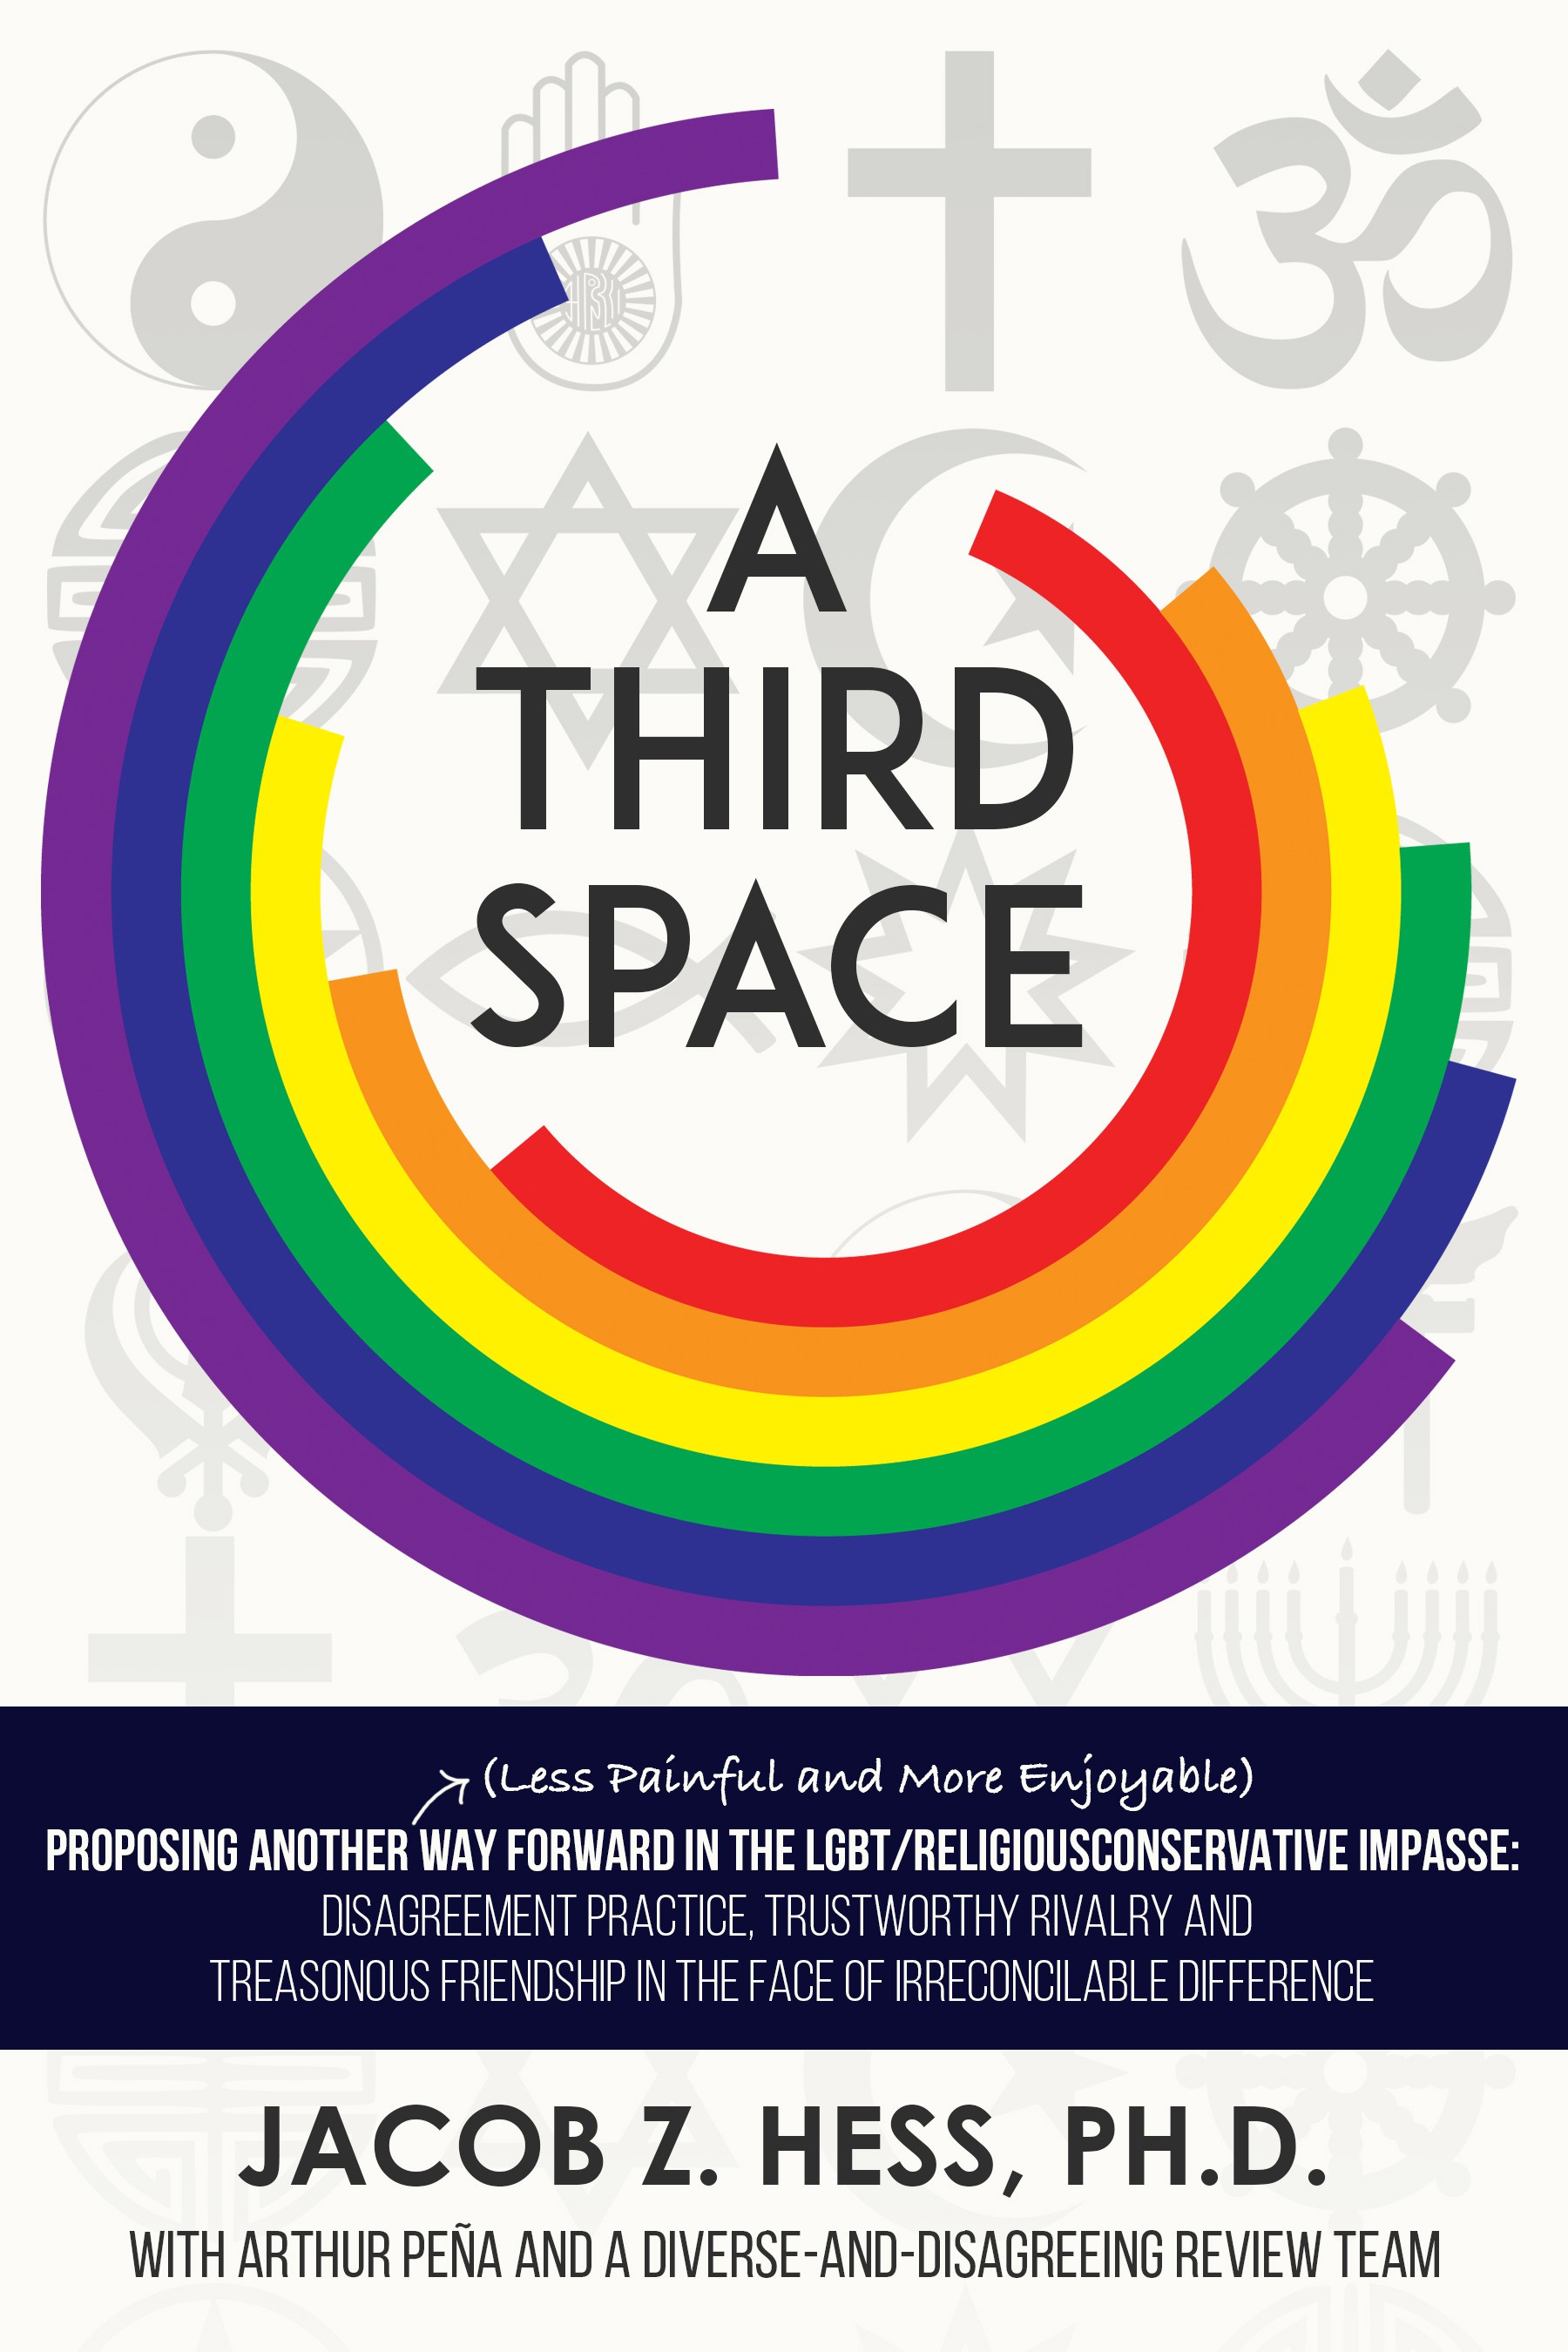 Create the cover for an exciting book proposing a New Way forward in the LGBT/Religious Conservative Impasse